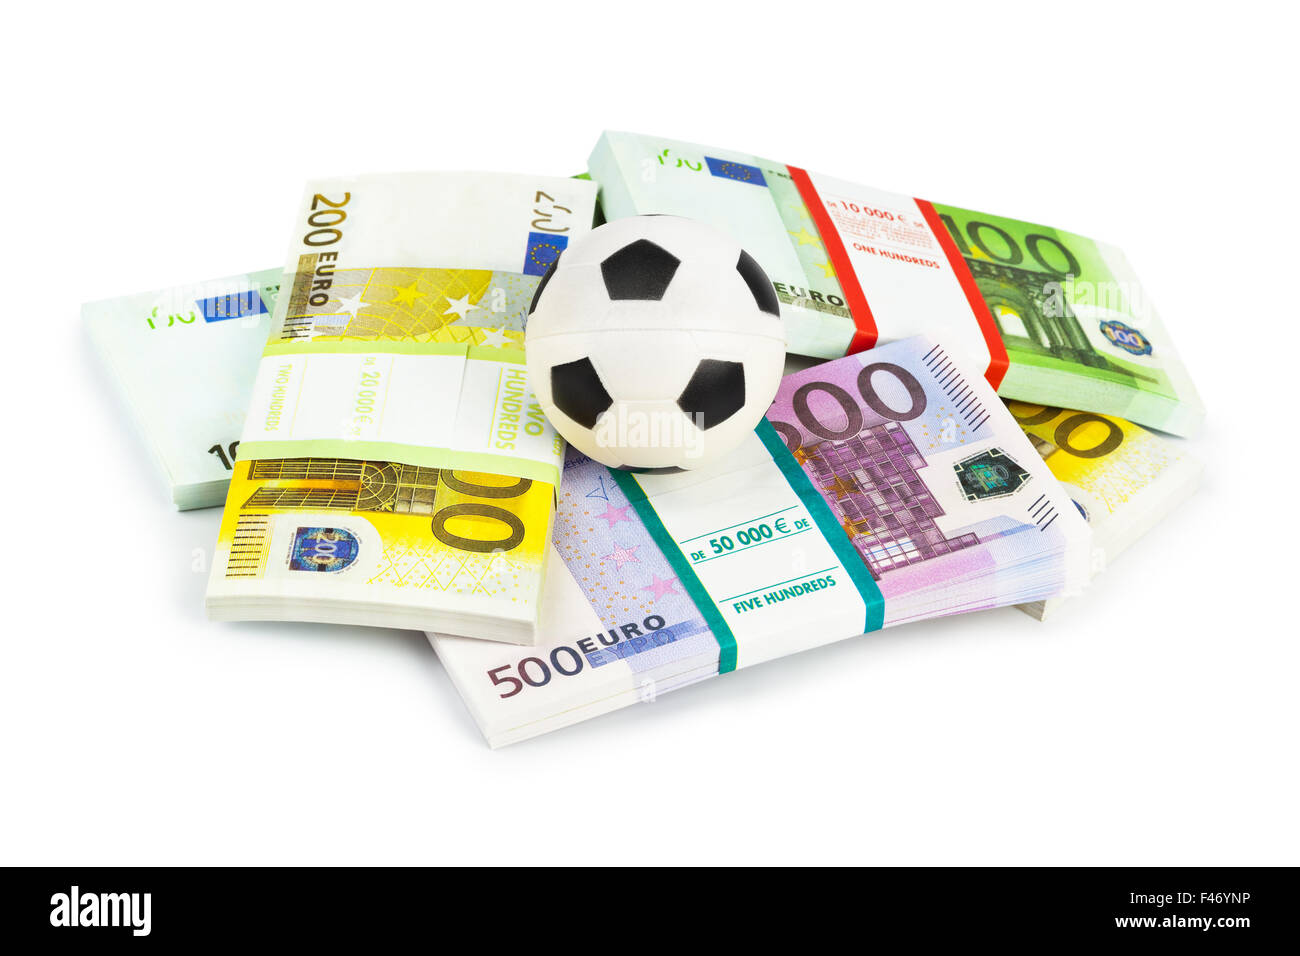 L'argent et le soccer ball Photo Stock